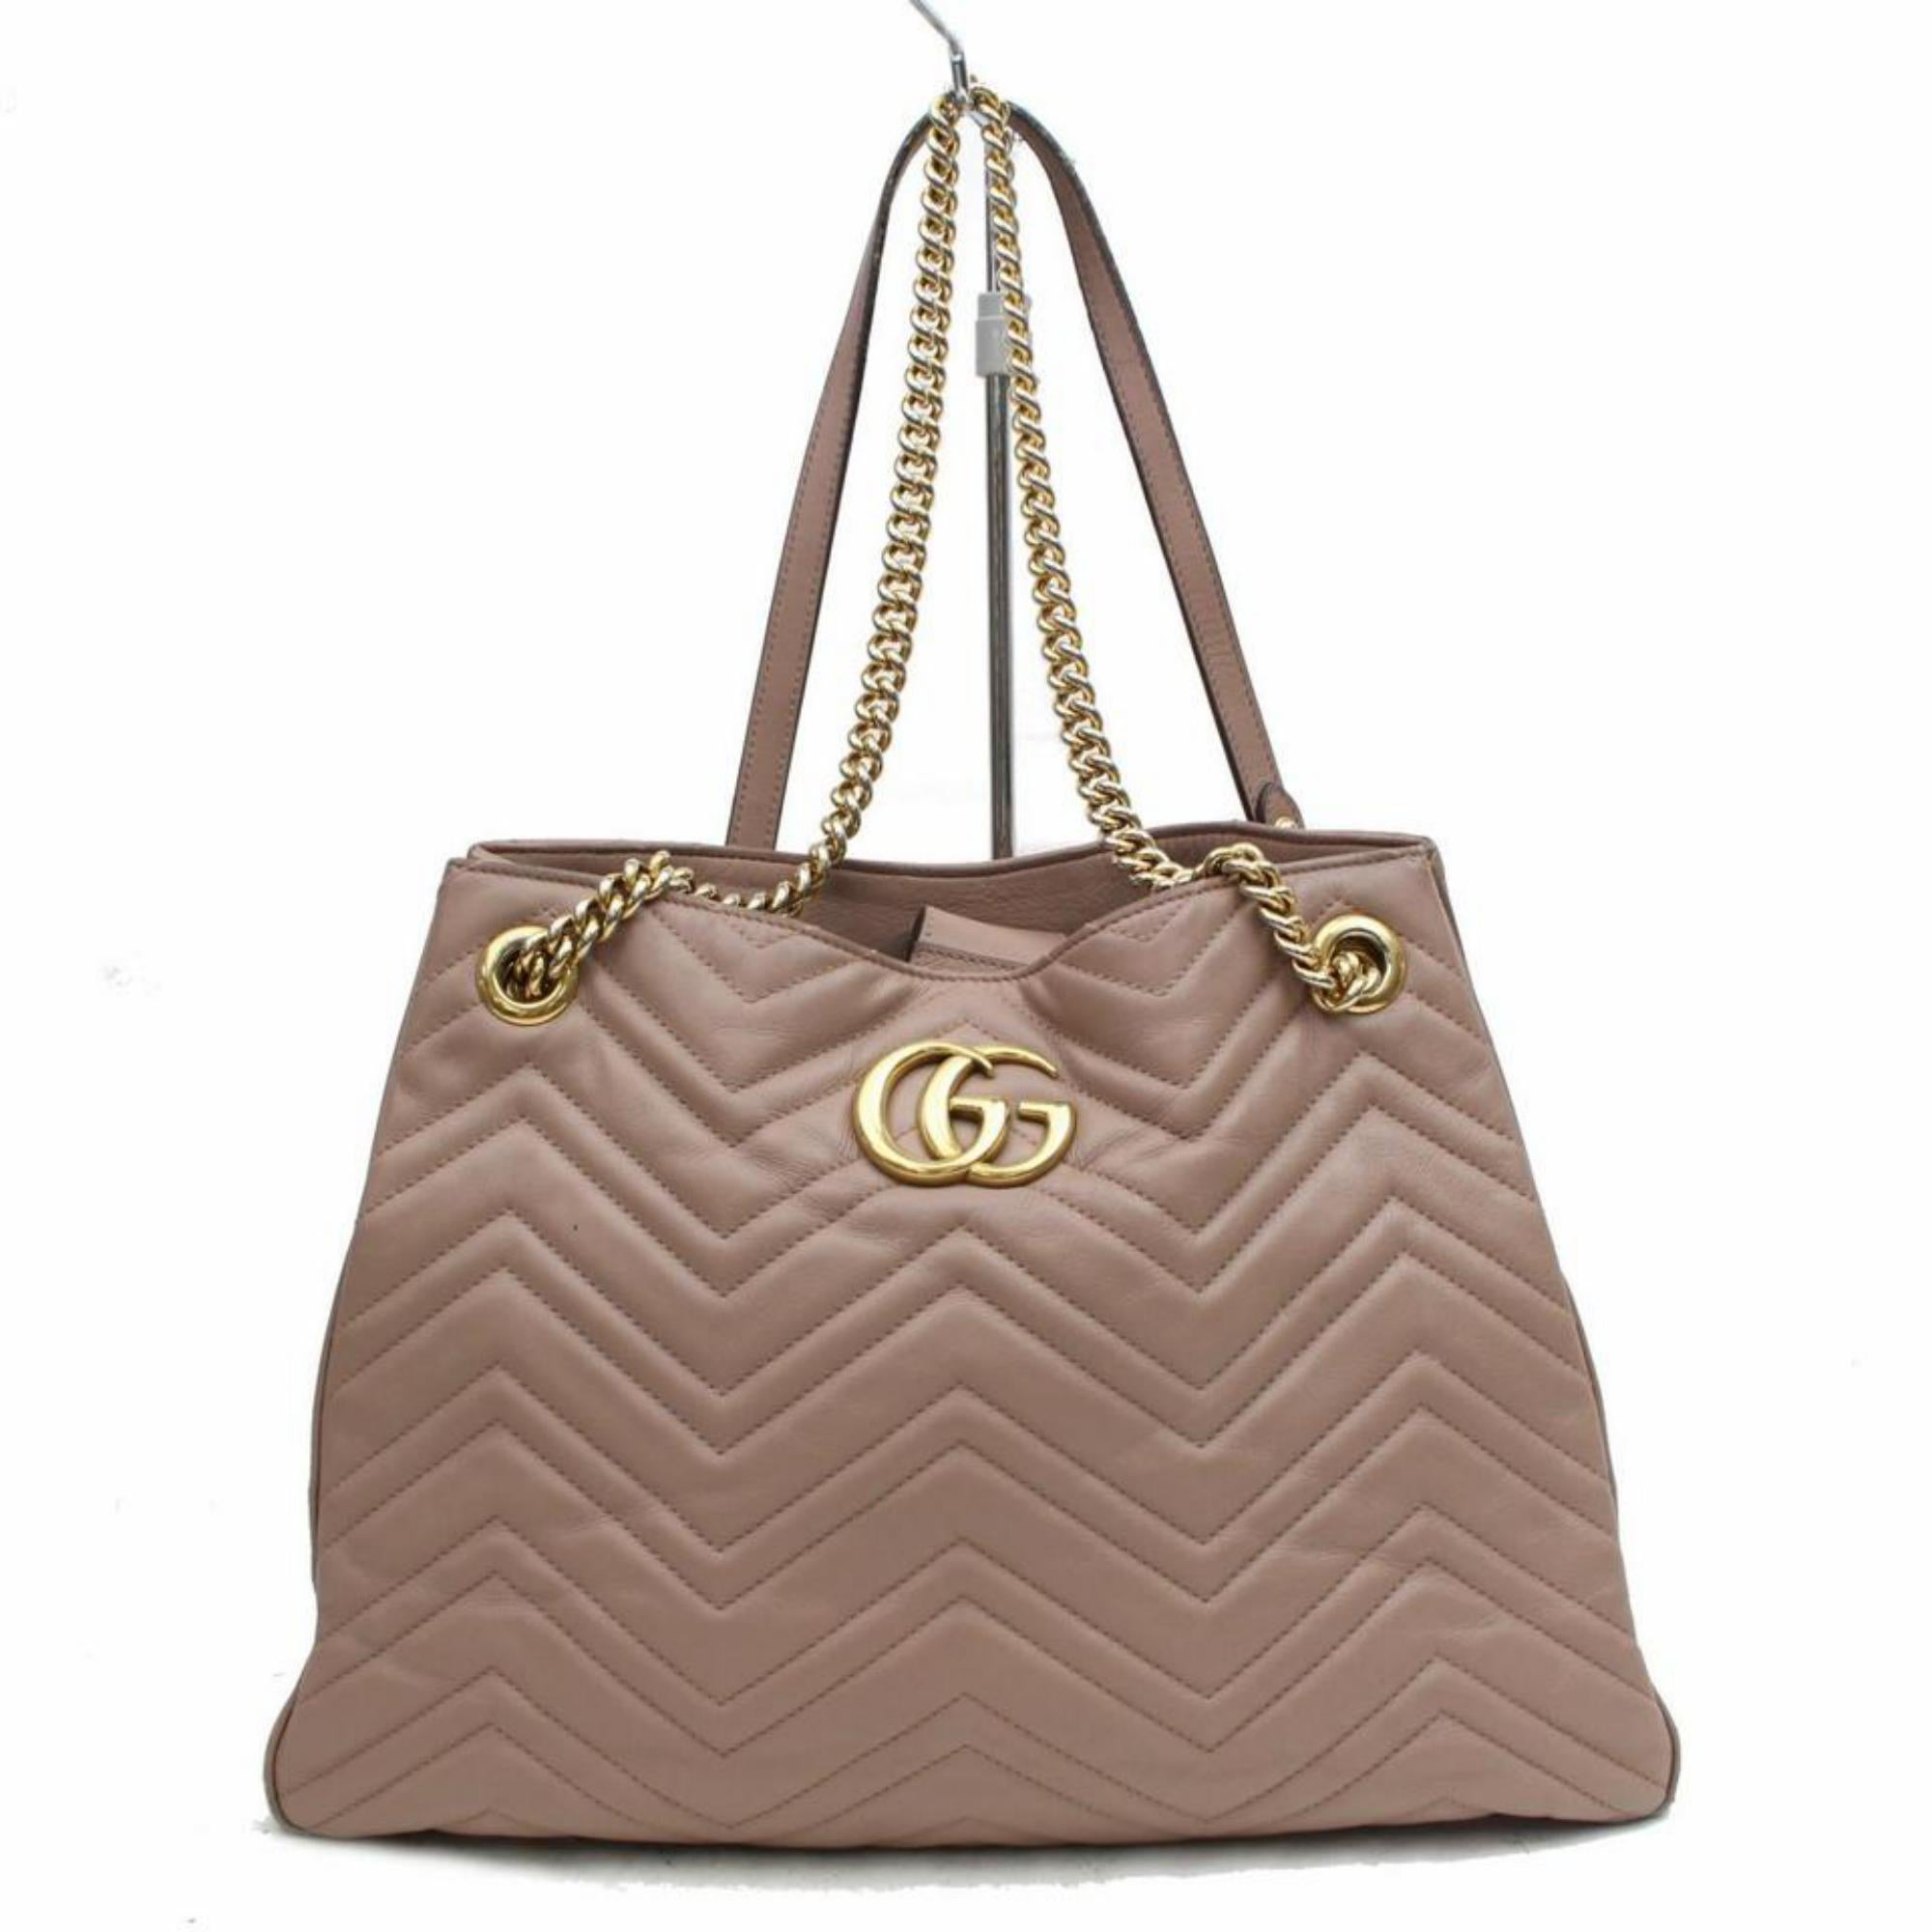 7a78c7f28399 Gucci Marmont Rose Quilted Medium Matelasse Chain Tote 868708 Taupe Shoulder  Bag For Sale at 1stdibs